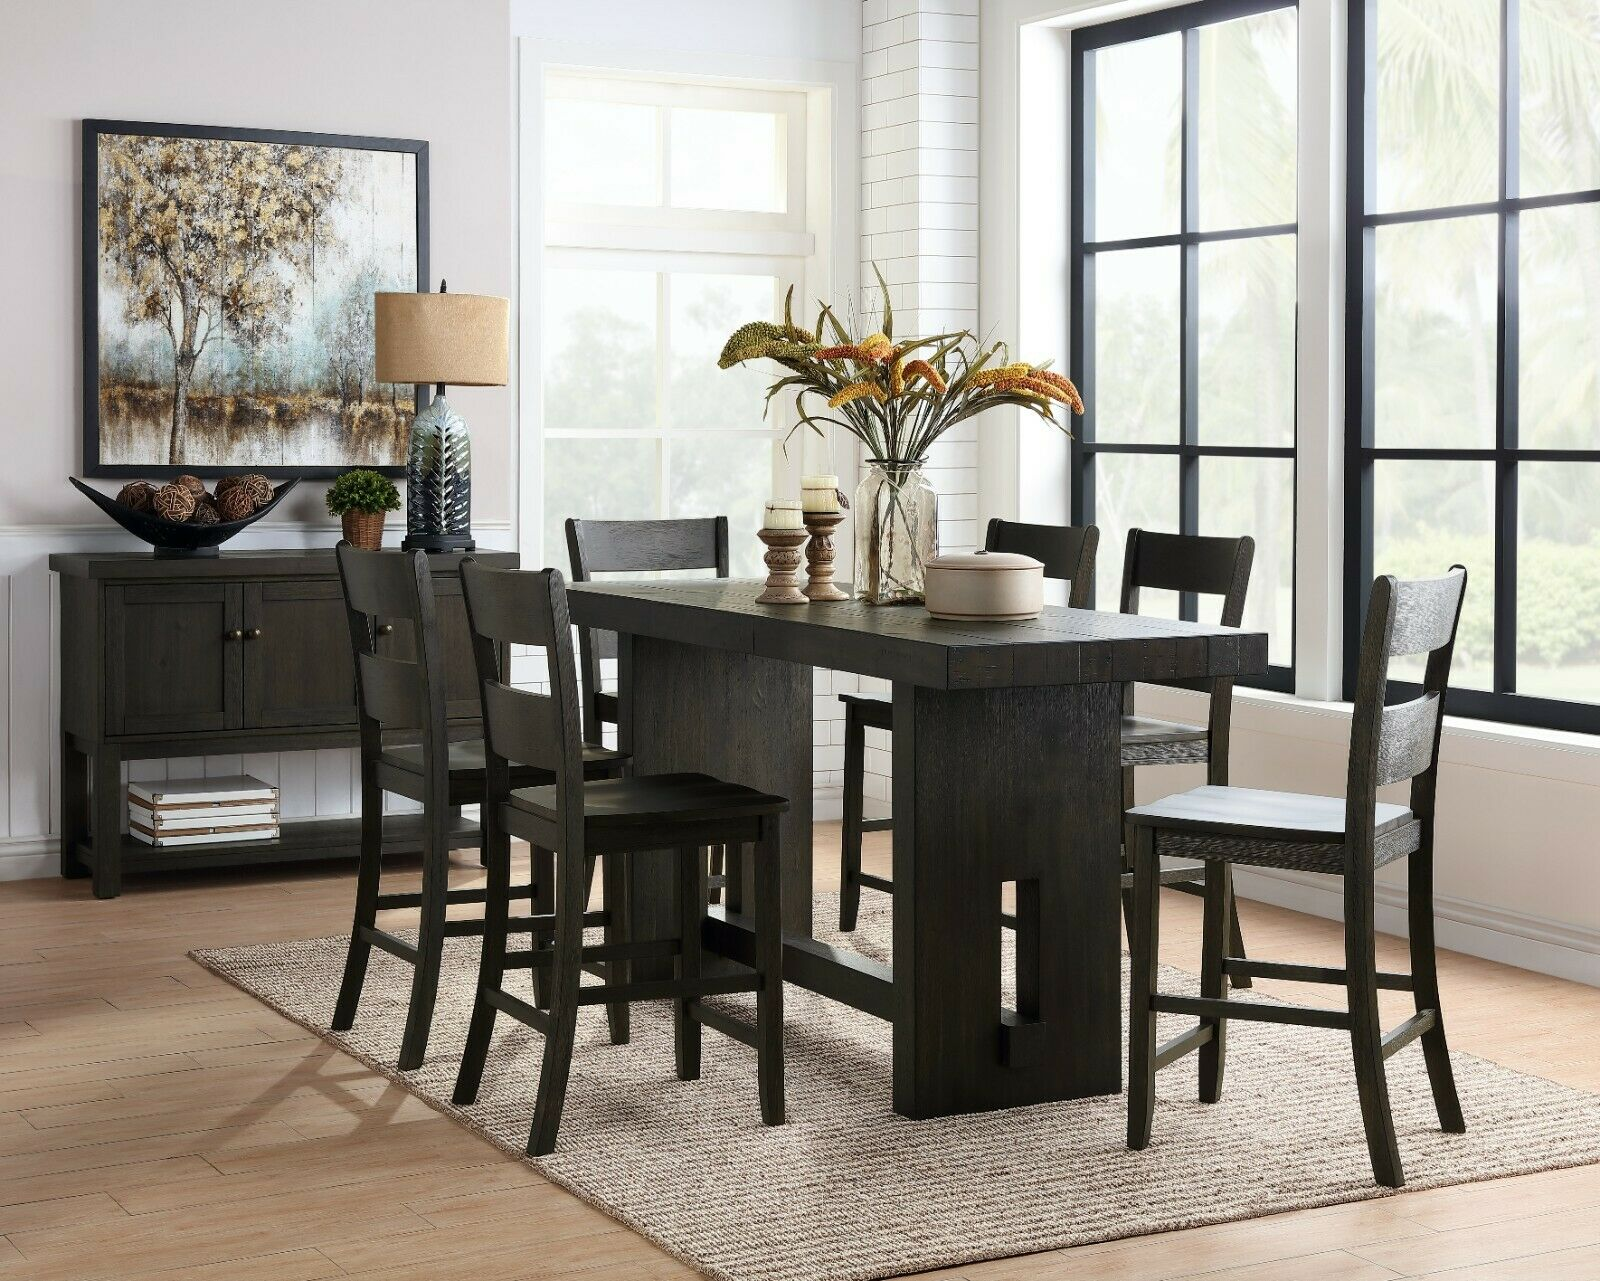 Brayden Studio Hillcrest 7 Piece Counter Height Extendable Dining Set For Sale Online Ebay